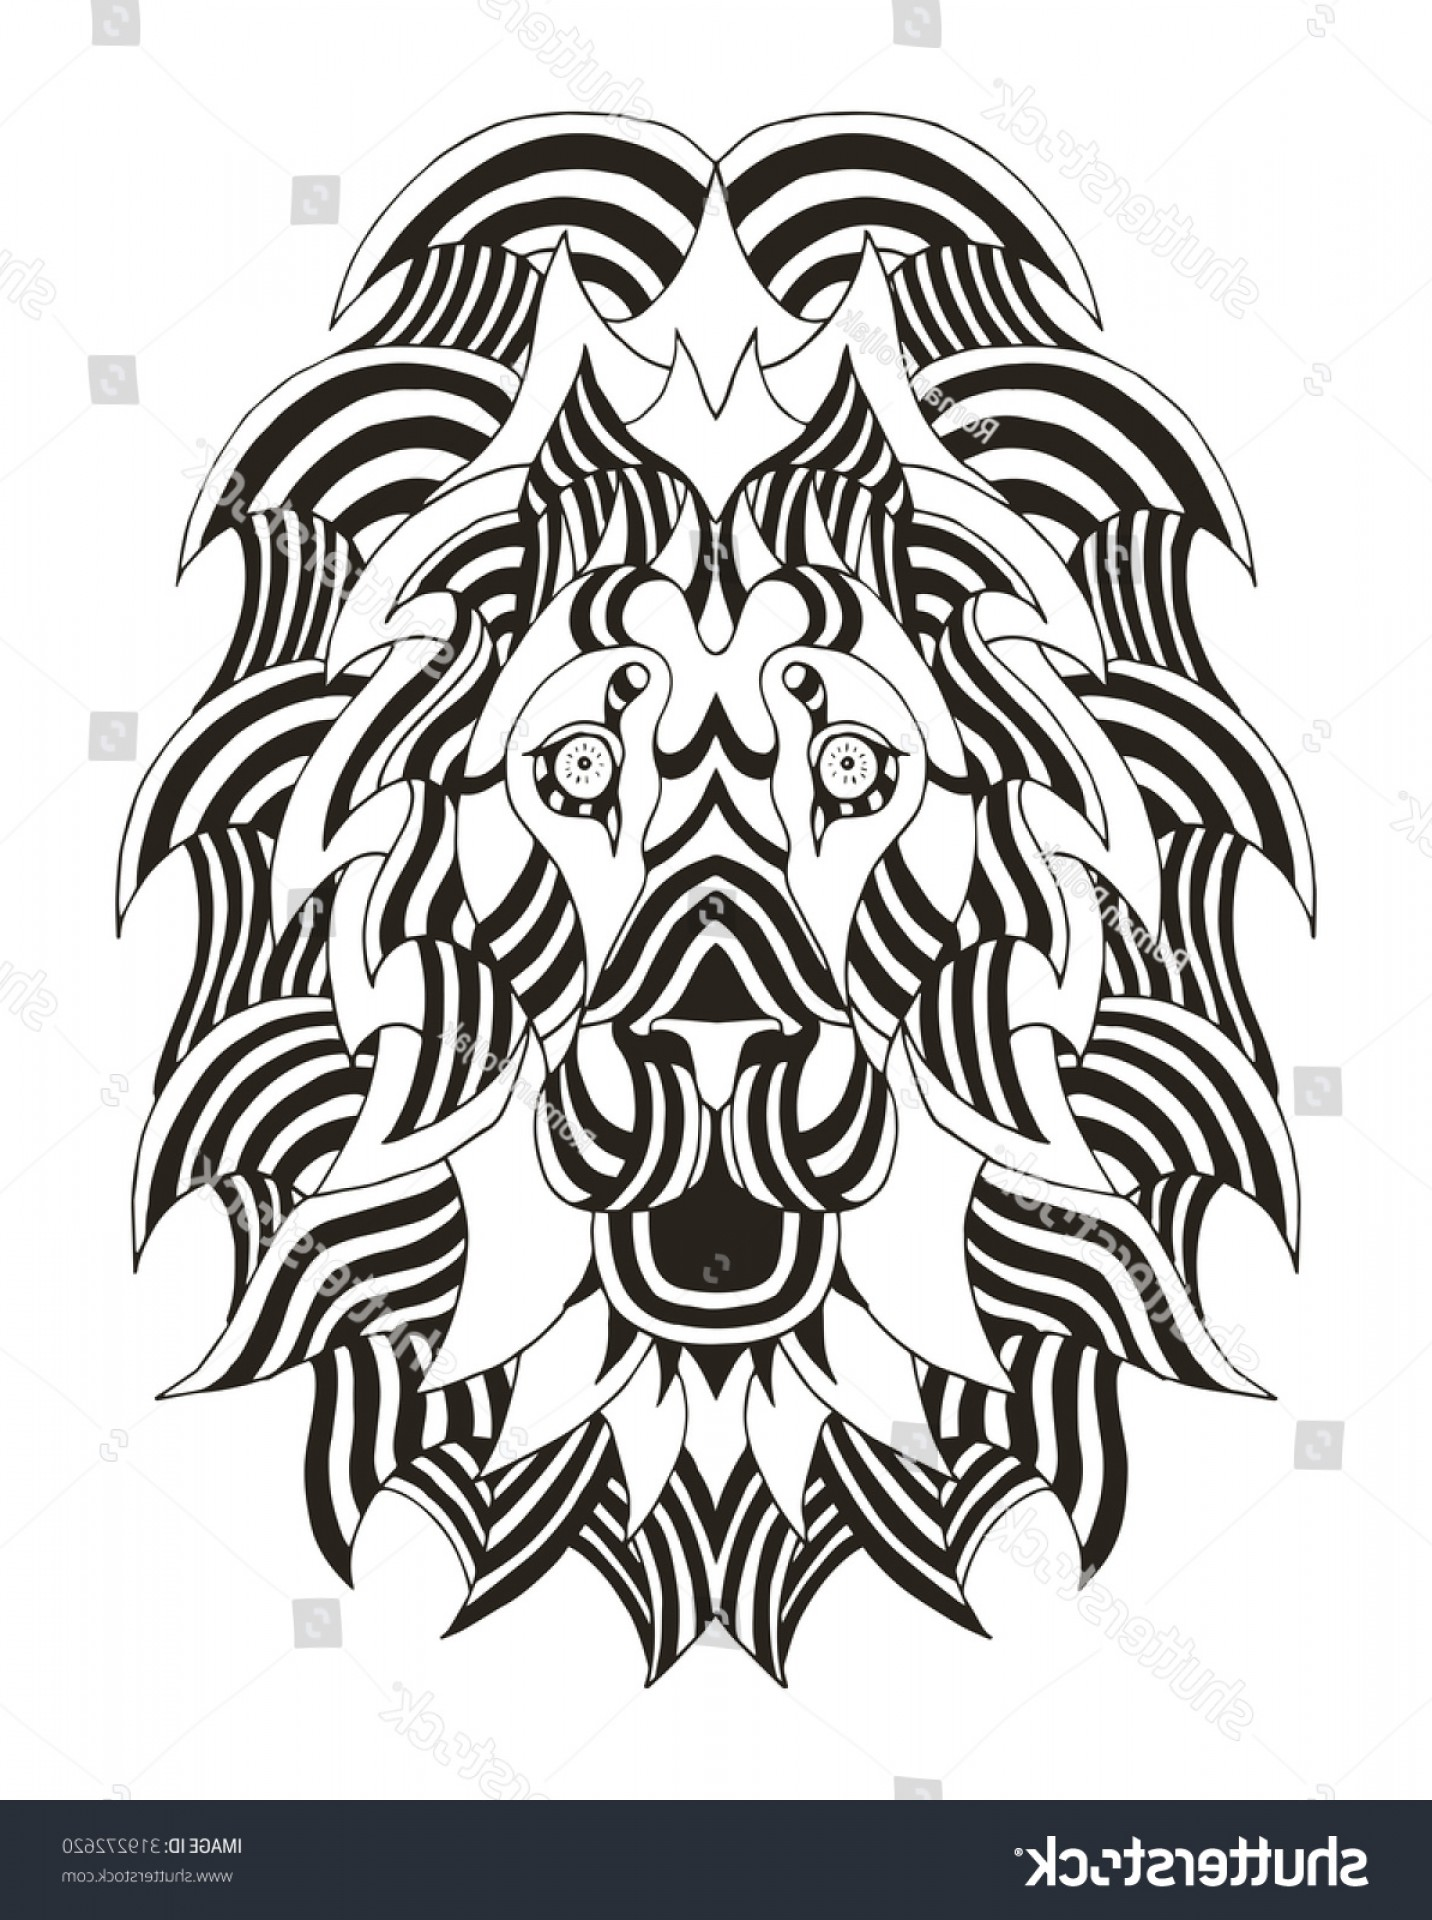 Faith Lions Vector Art Images: Lion Head Zentangle Stylized Vector Illustration